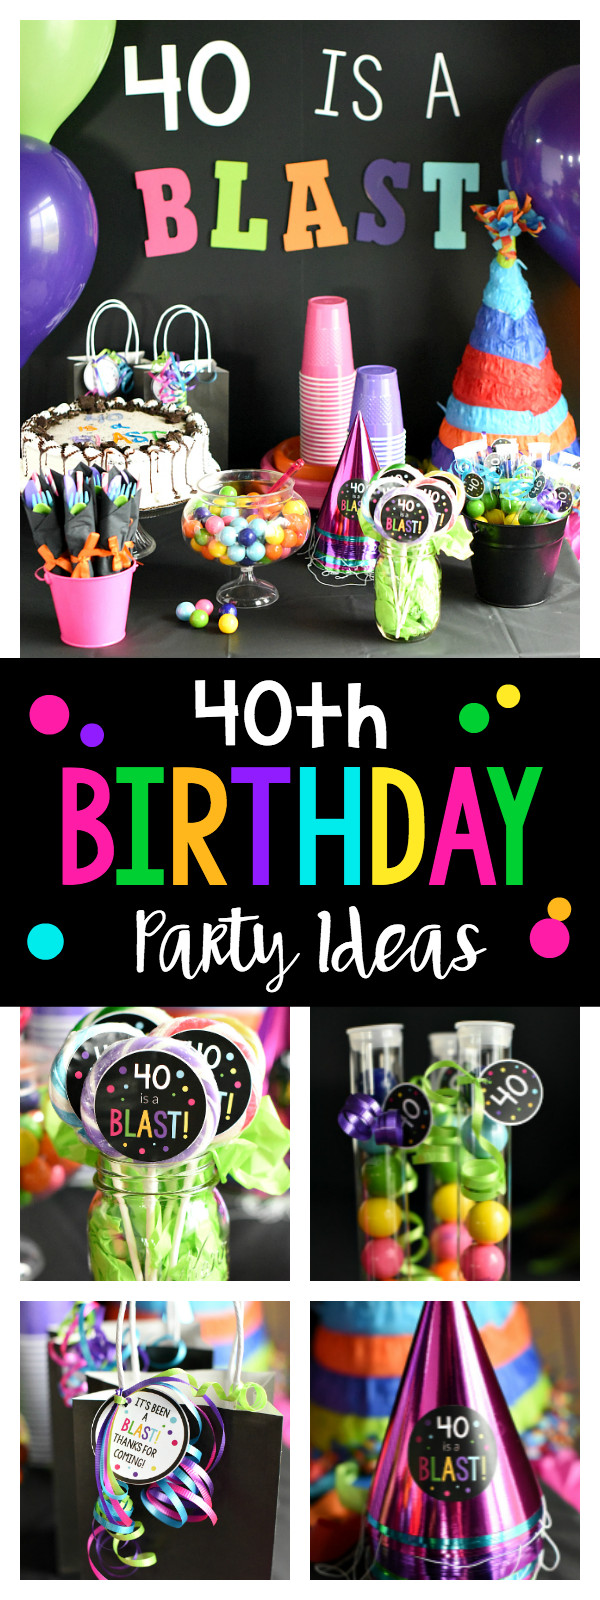 Best ideas about 40th Birthday Party Decorations Ideas . Save or Pin 40th Birthday Party Throw a 40 Is a Blast Party Now.